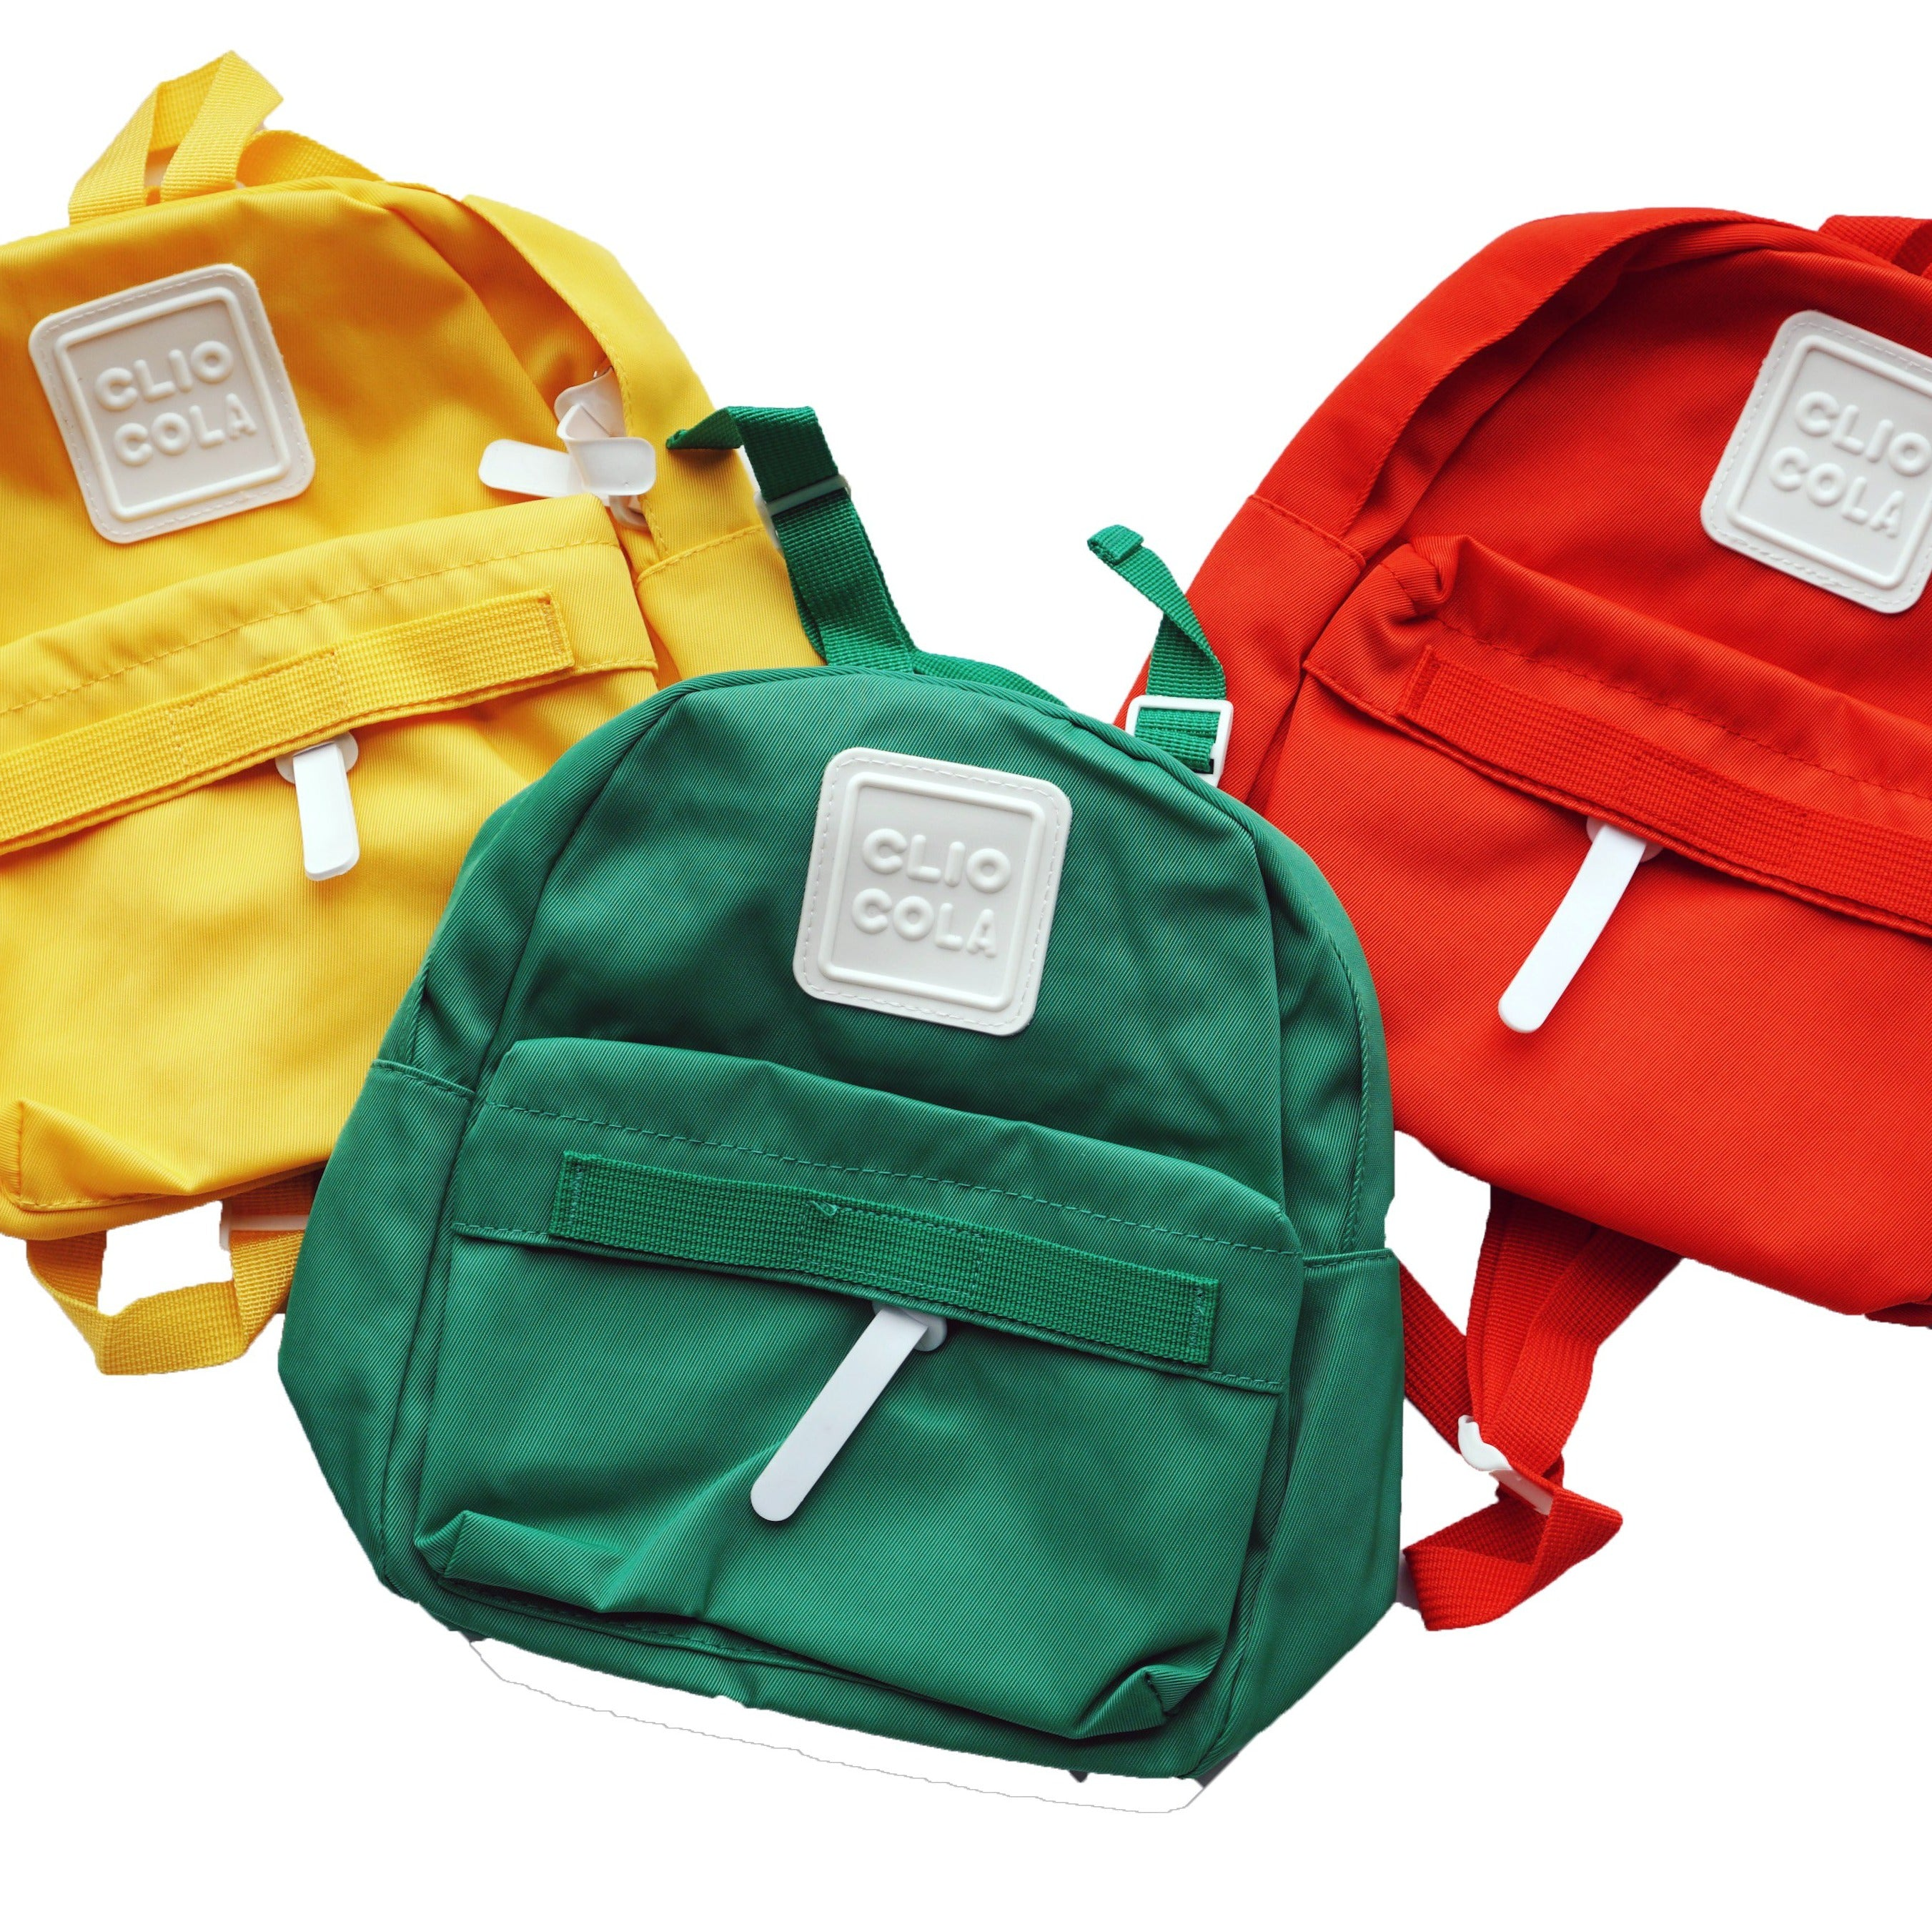 Clio Cola Back Pack